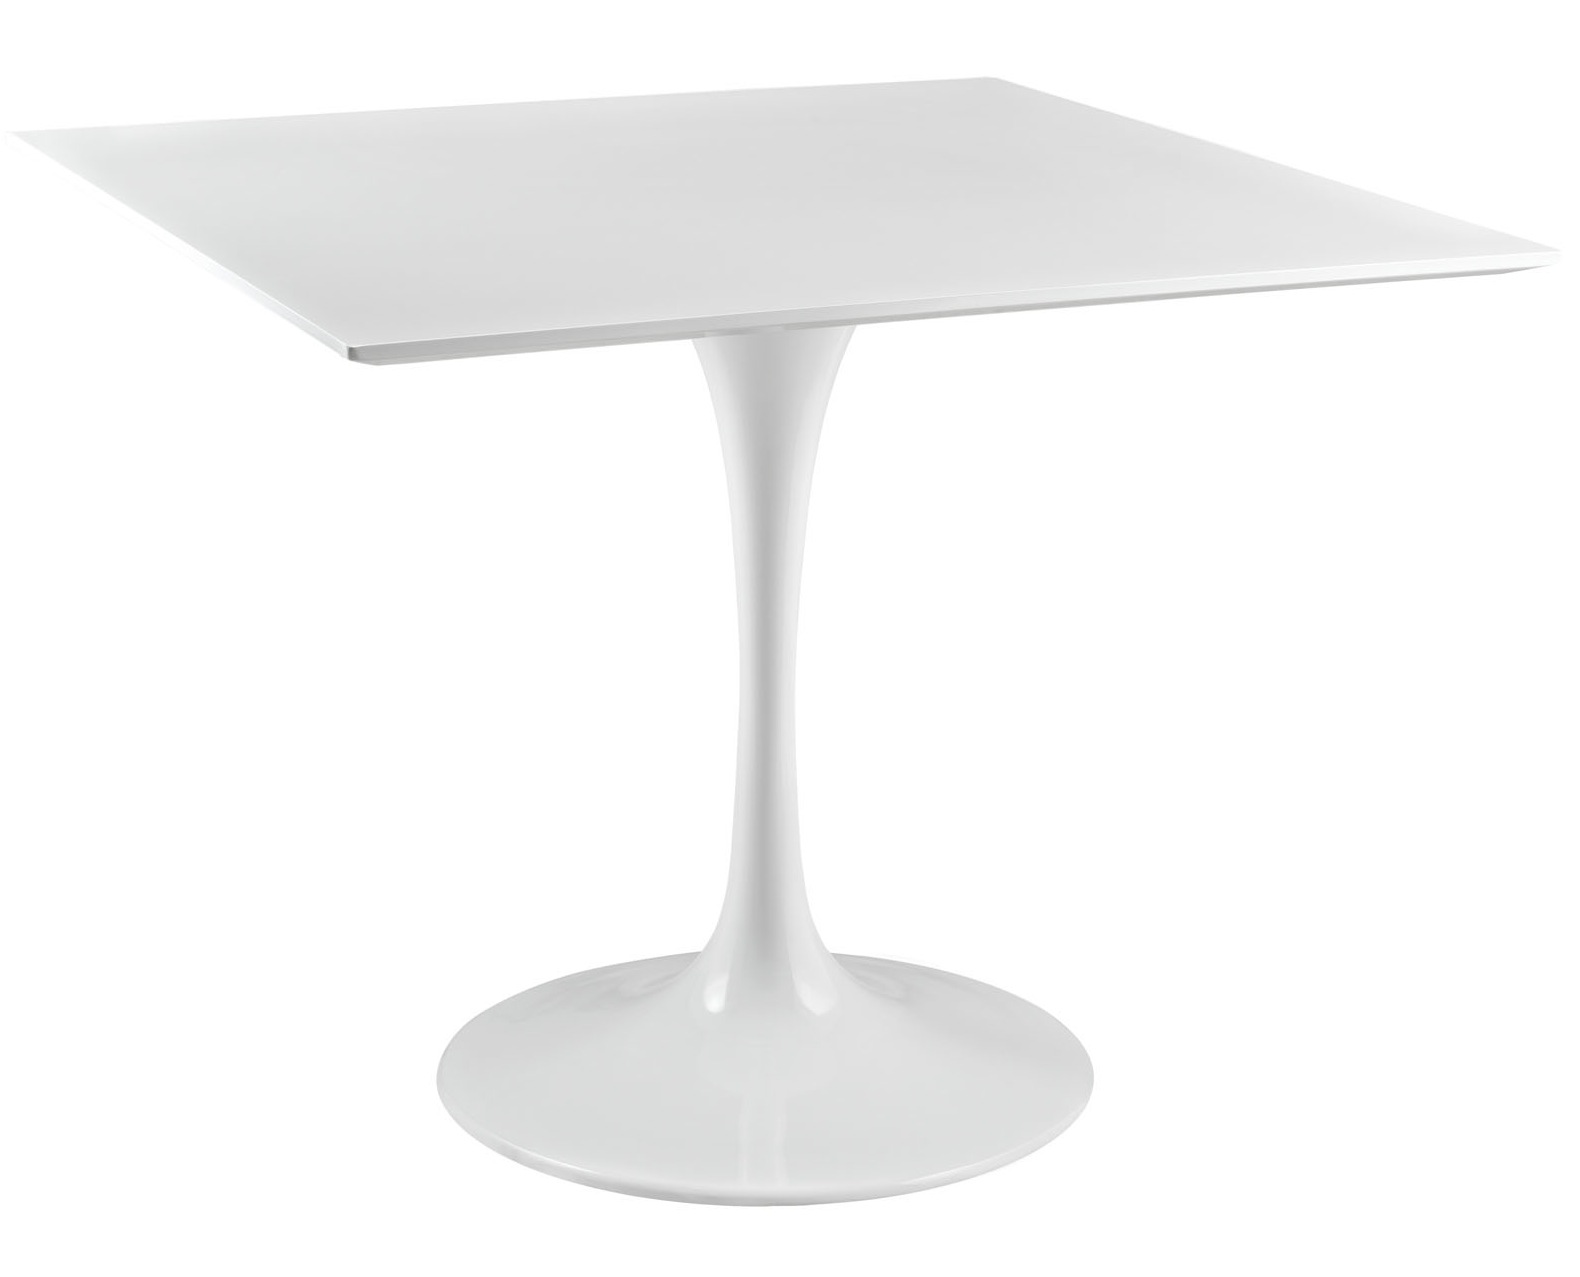 36inch-square-tulip-table.jpg